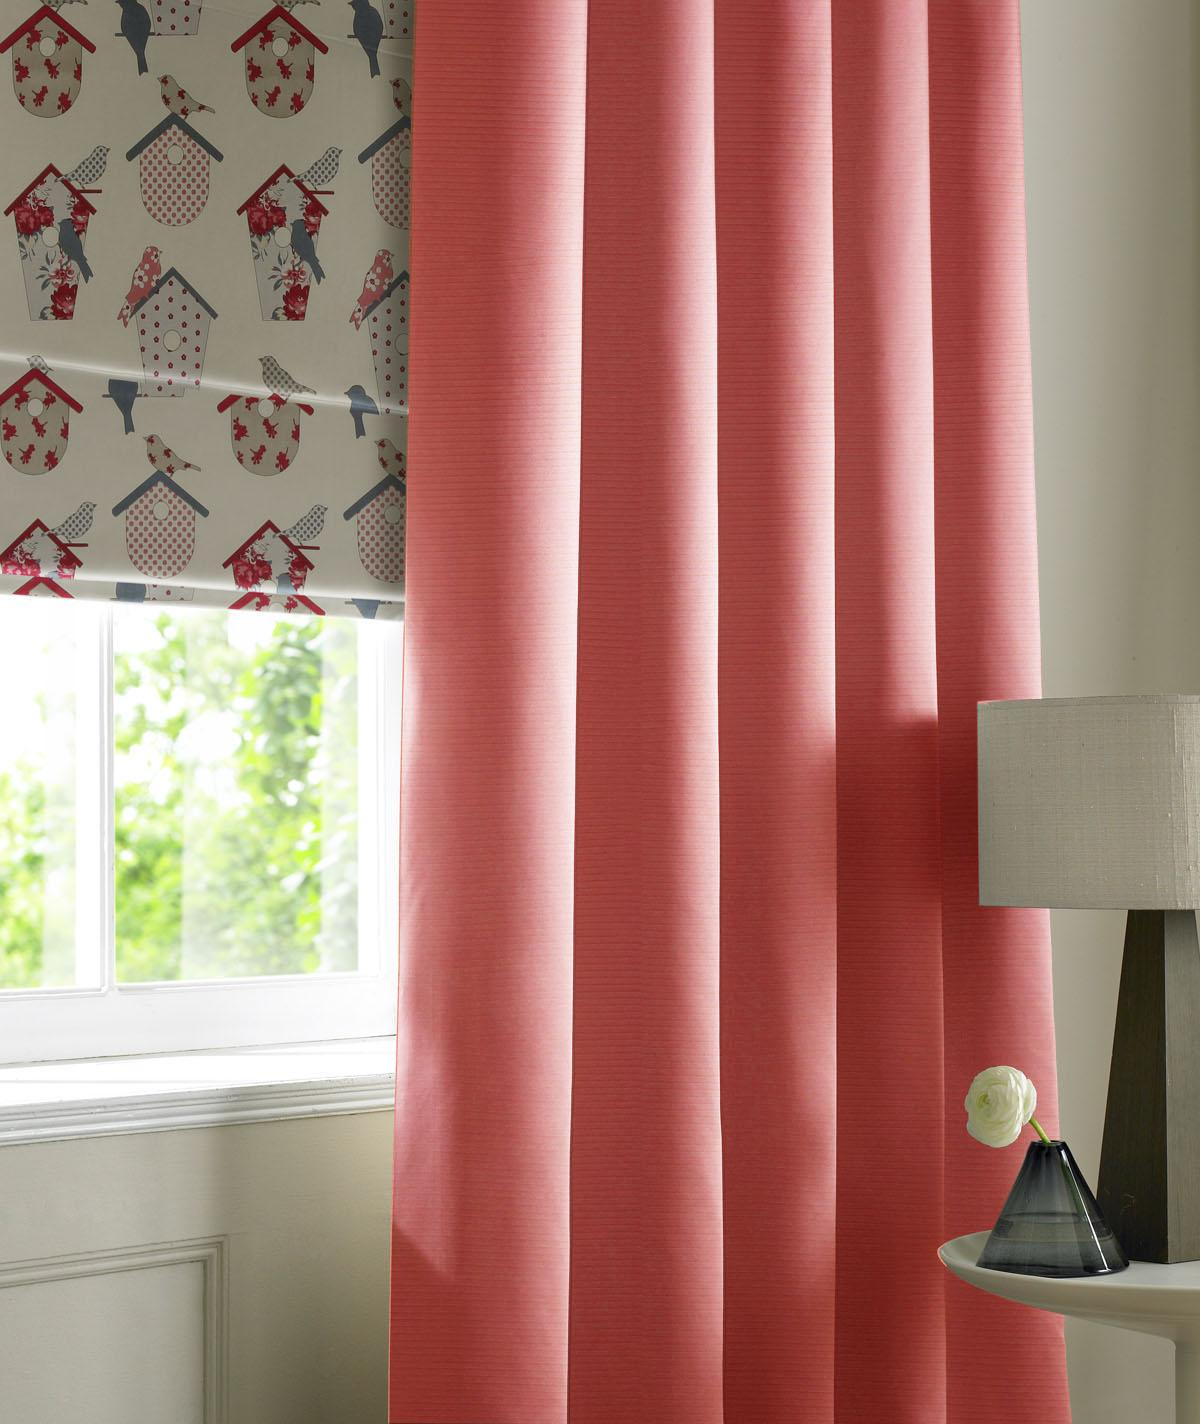 Stockists of Coral Rib Plain Made to Measure Curtains